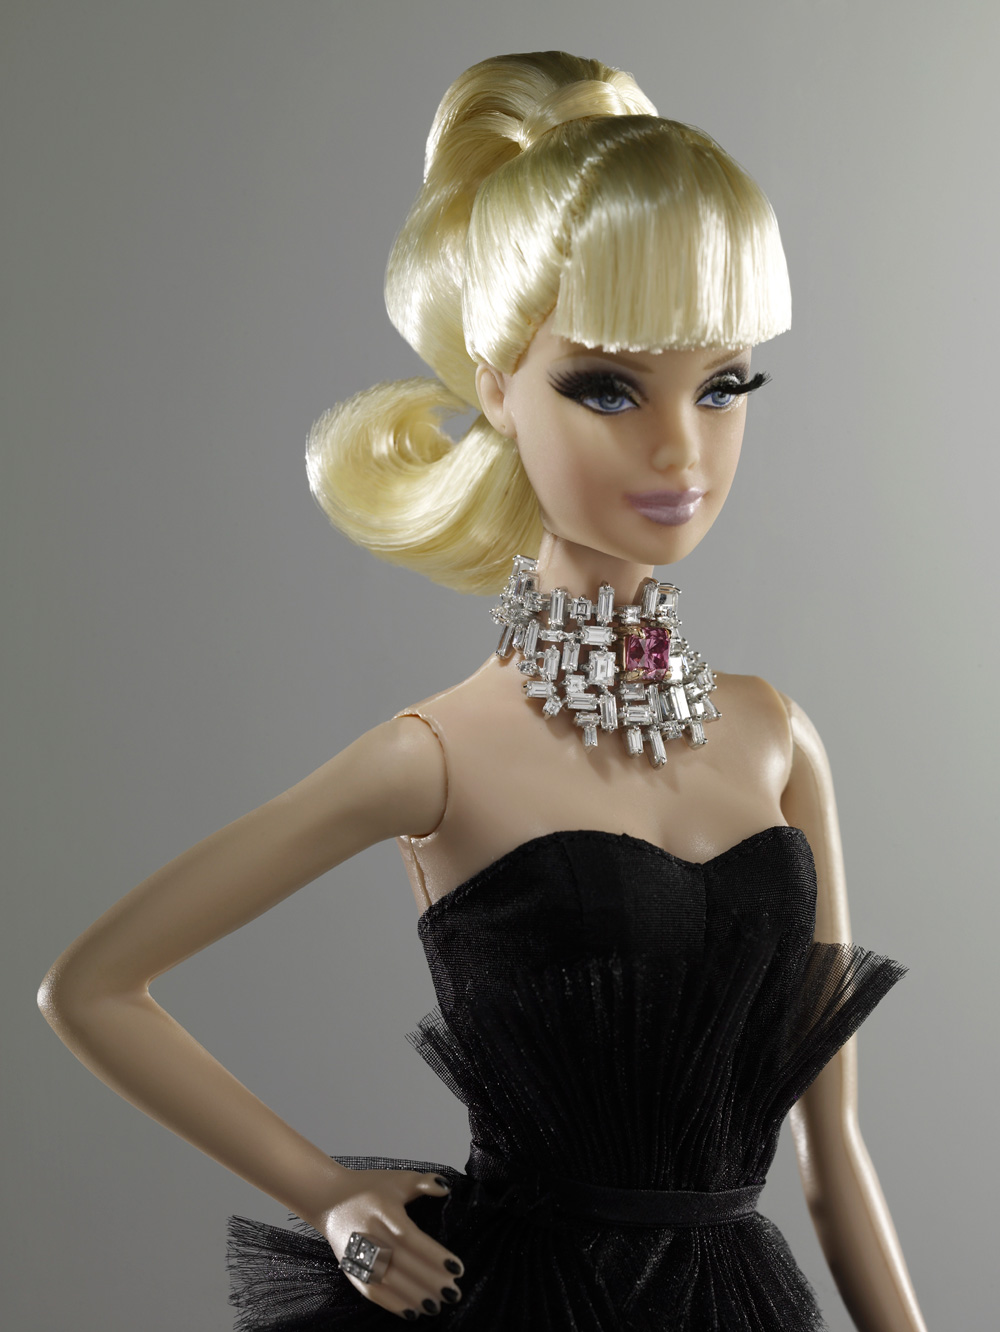 Worlds Most Expensive Barbie Doll